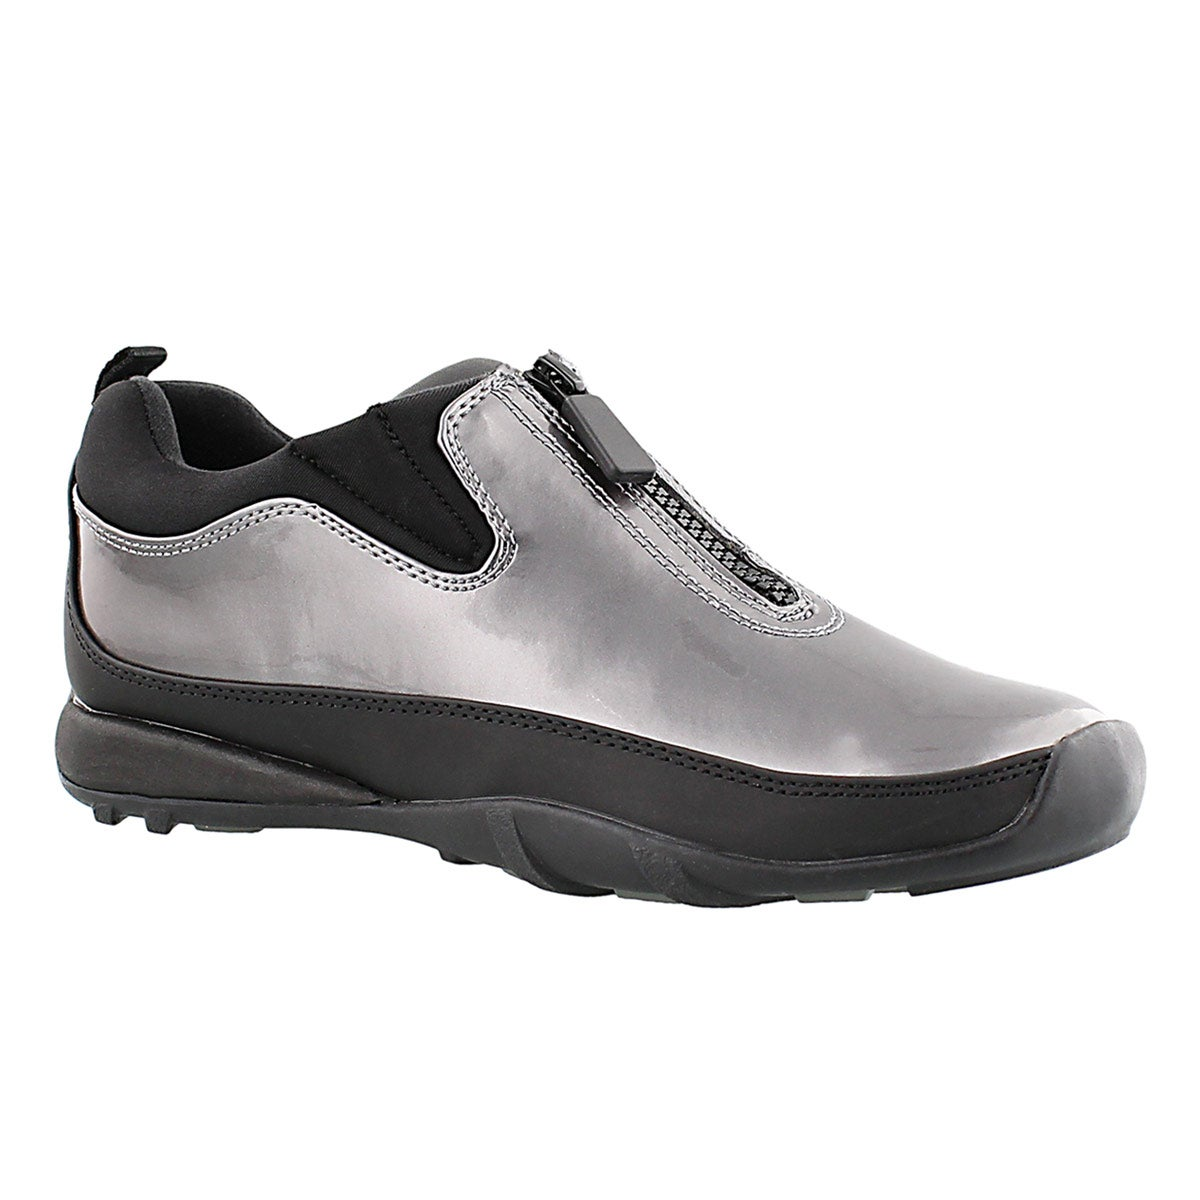 Women's HOWDOO pewter front zip rain shoes